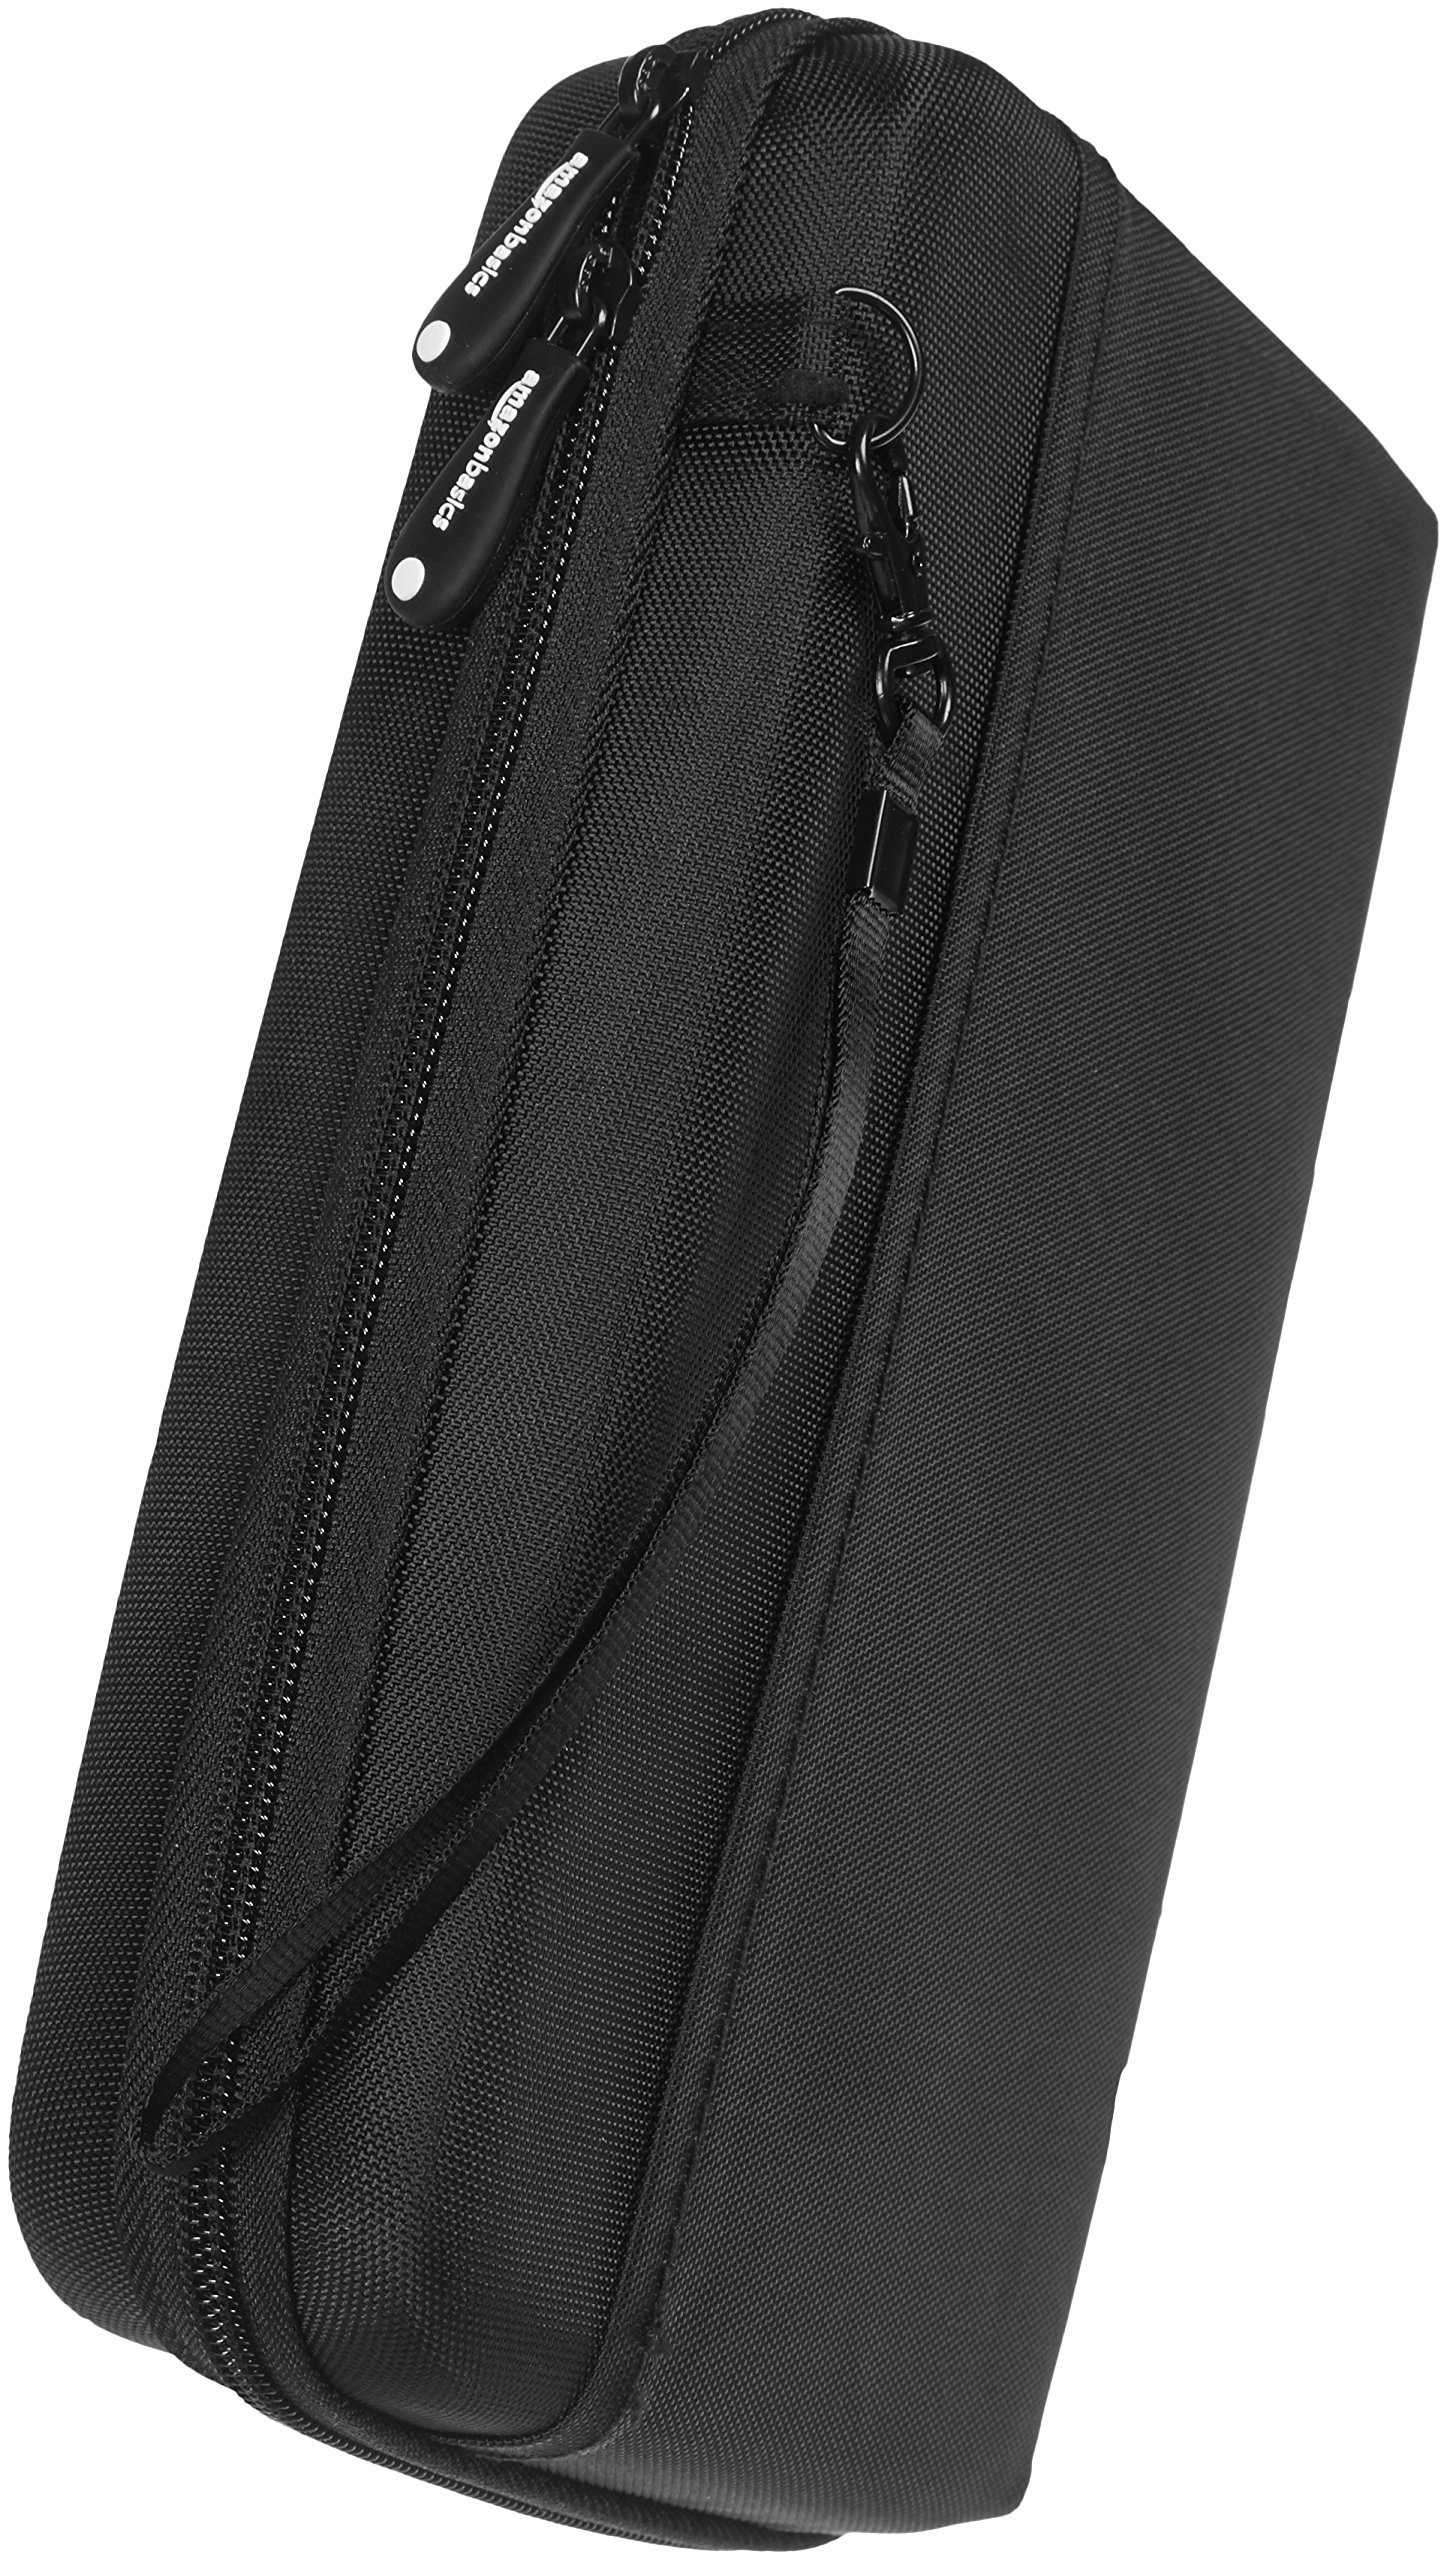 AmazonBasics Universal Travel Case for Small Electronics and Accessories, Black by AmazonBasics (Image #3)